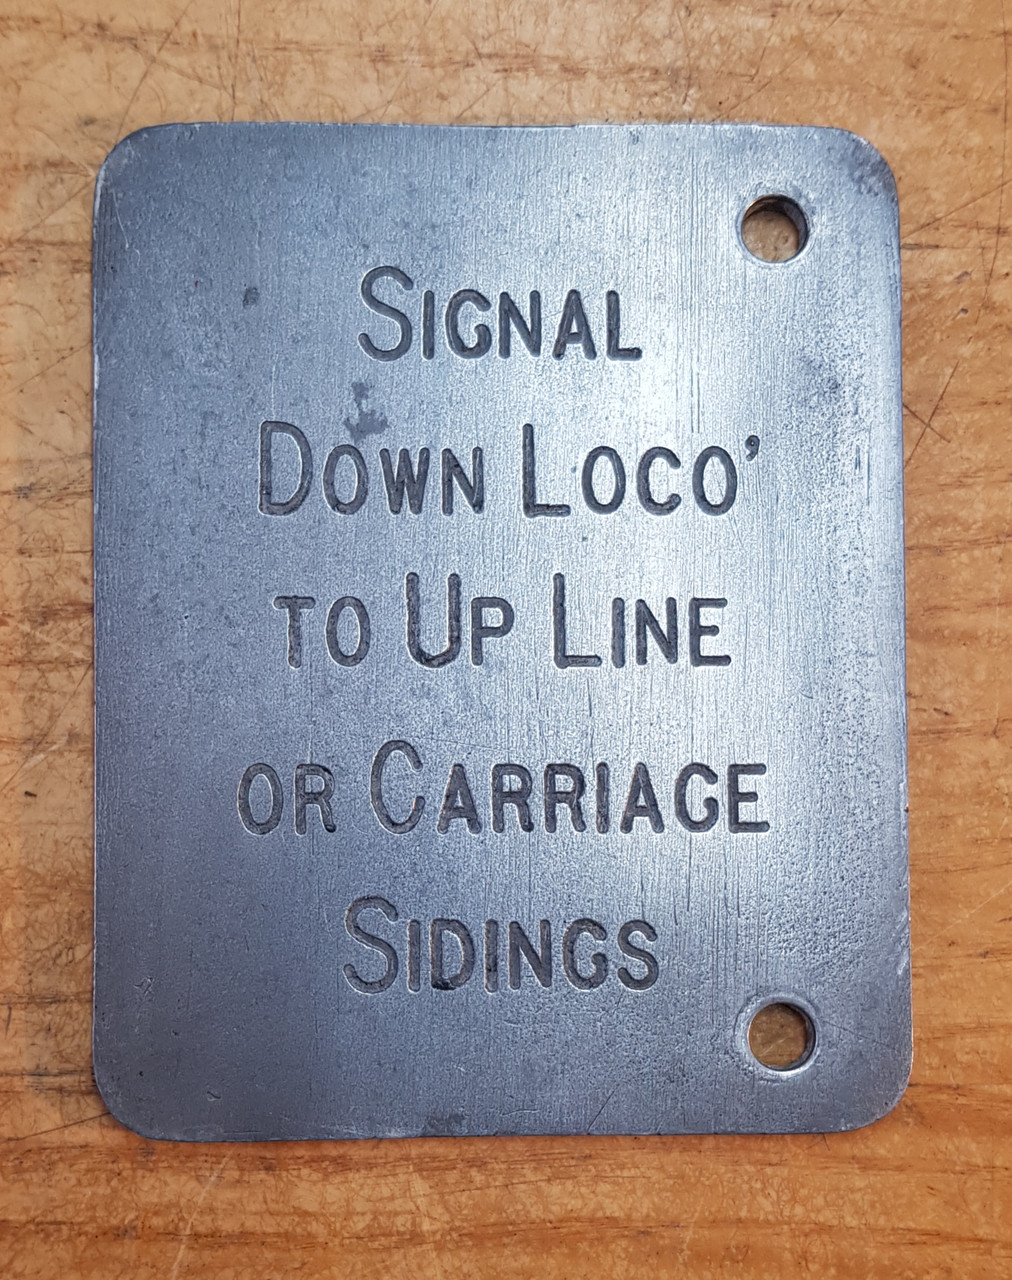 VT 4103. BR(M)  ALLOY LEVER DESCRIPTION PLATE WITH LOCO AND CARRIAGE.